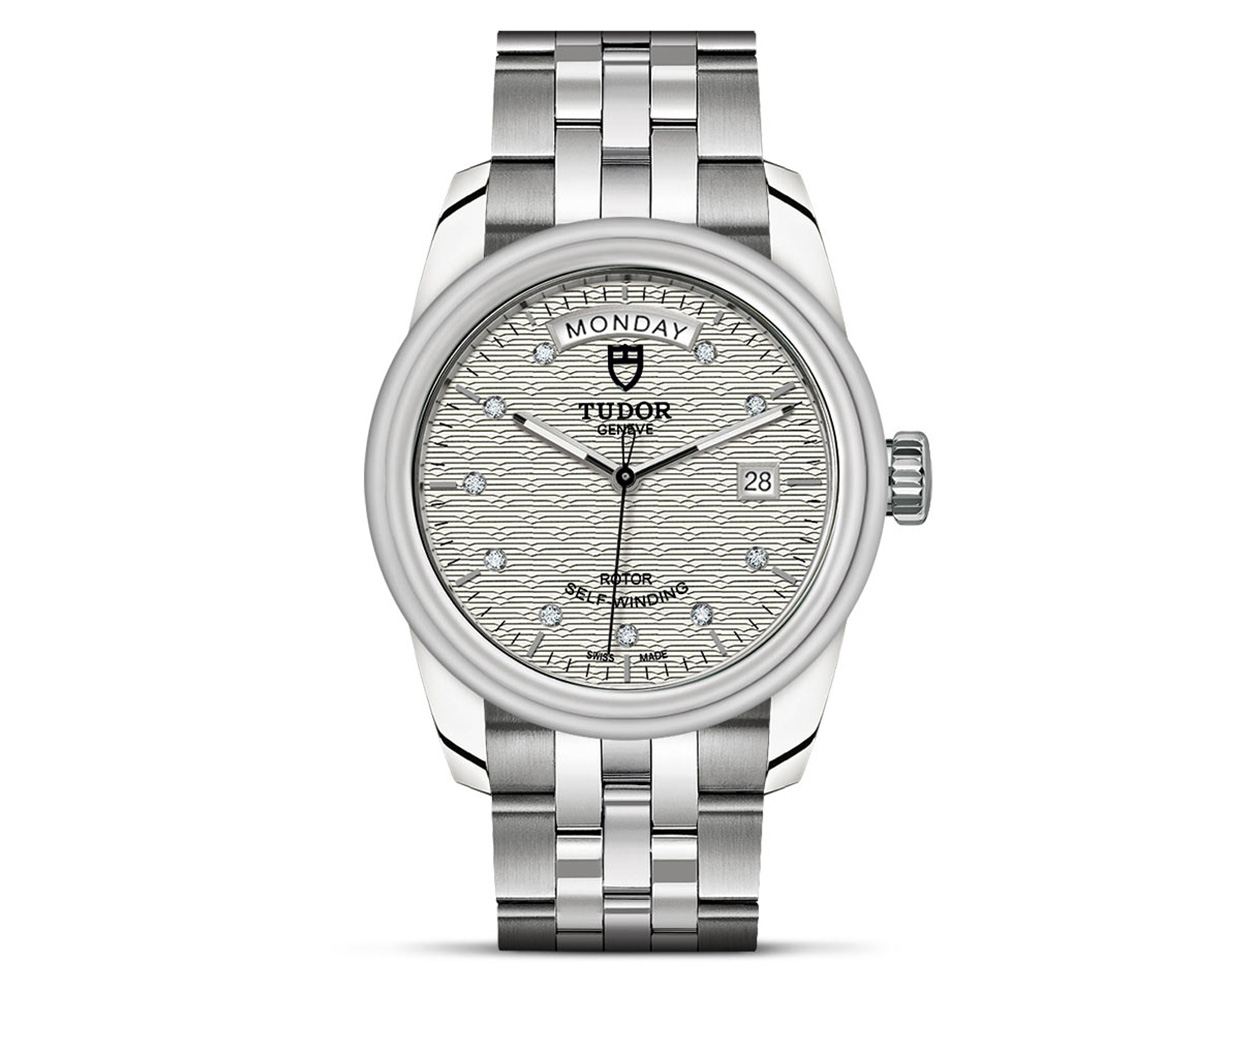 TUDOR Glamour Date Day M56000 0004 FINAL